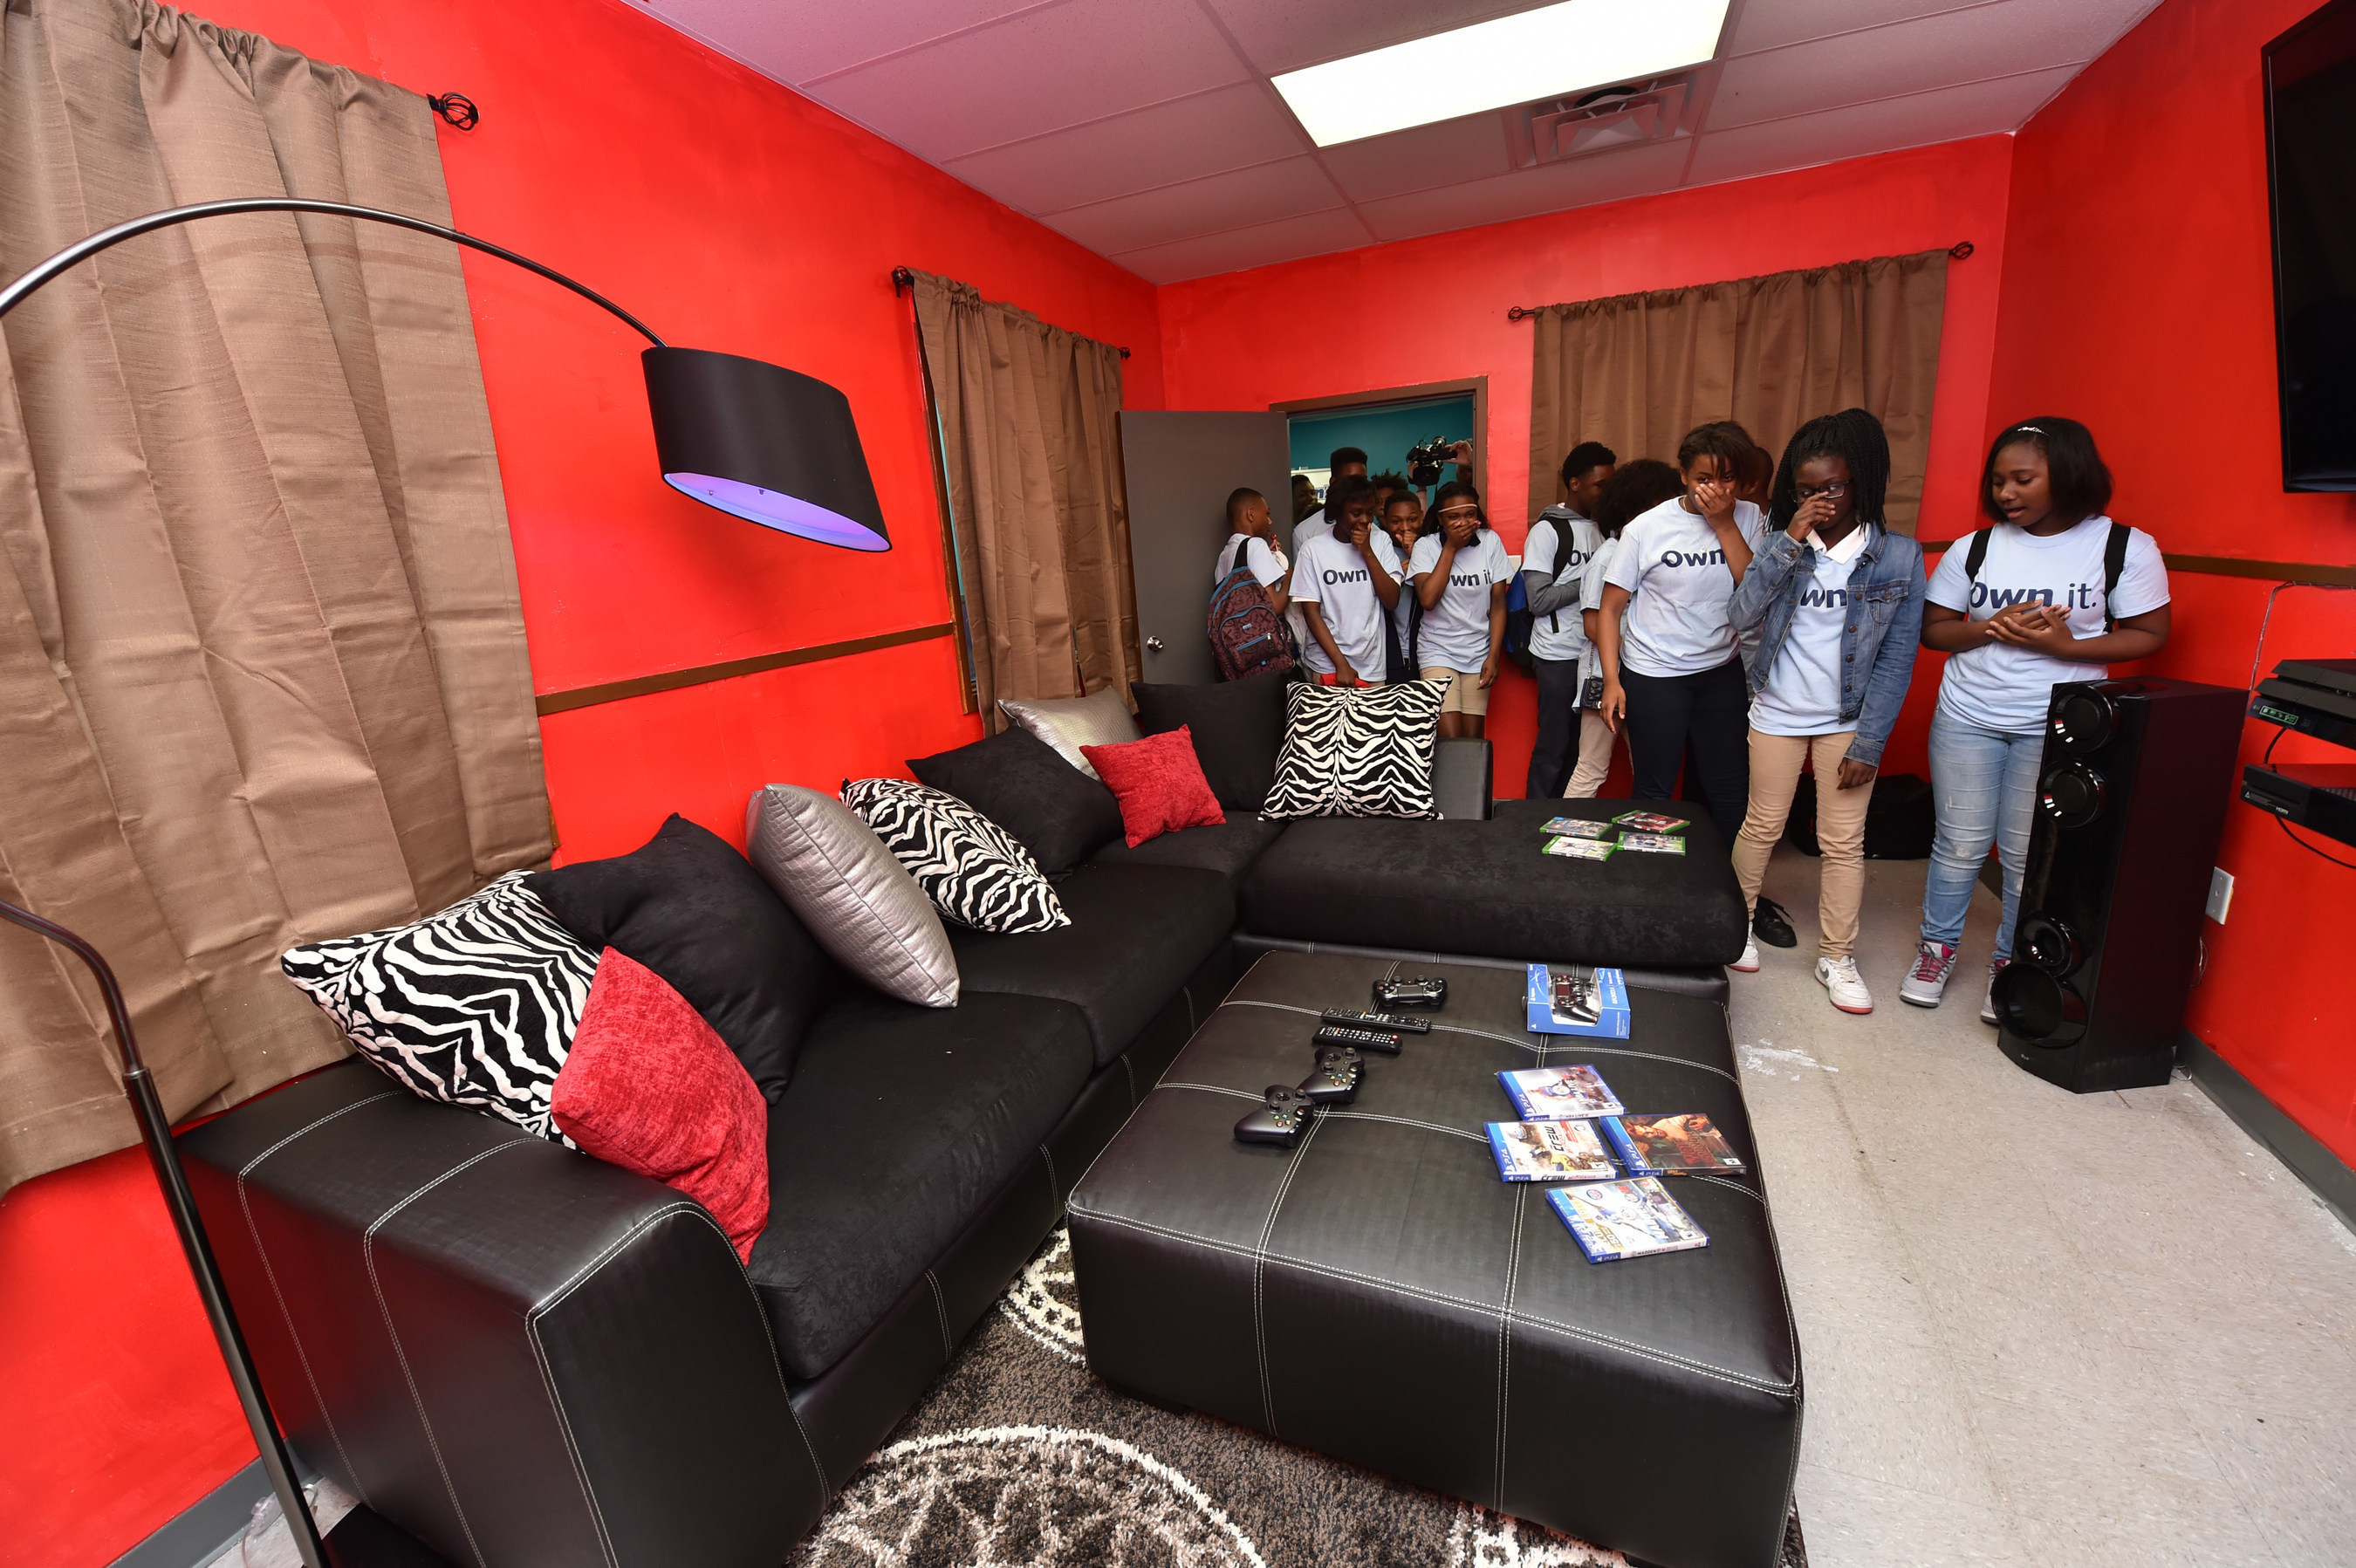 Aaron's, Inc. associates surprised 30 teens at Boys & Girls Clubs of Central Mississippi with a renovated Keystone Teen Center Friday, April 15, 2016, in Jackson, Mississippi. Keystone is Boys & Girls Clubs of America's premier teen leadership program which helps teens develop their character and leadership skills in hopes of helping them reach their potential and create positive change in their community.